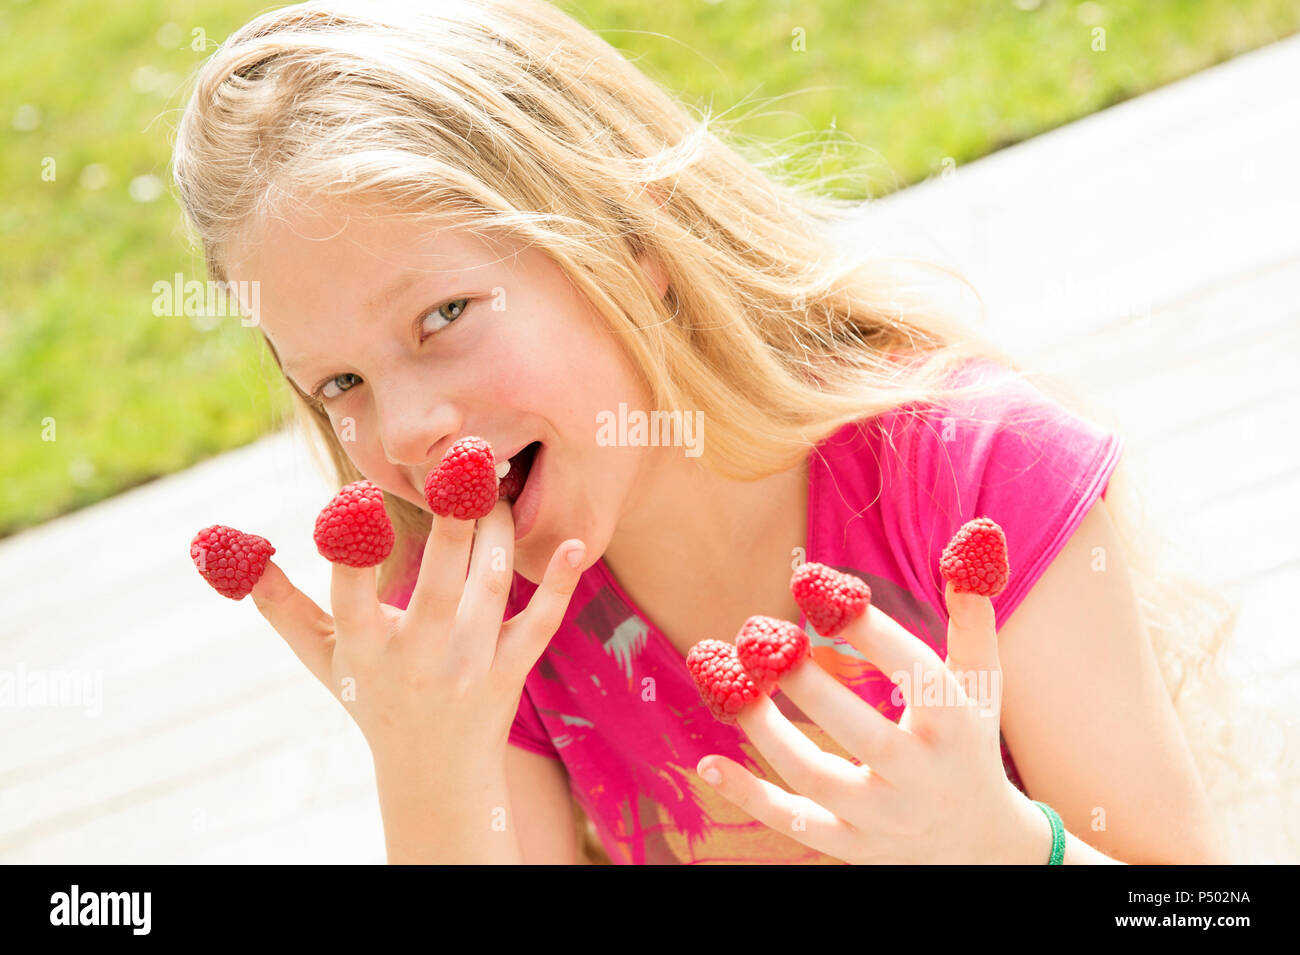 Portrait of smiling girl with raspberries on  fingers Stock Photo